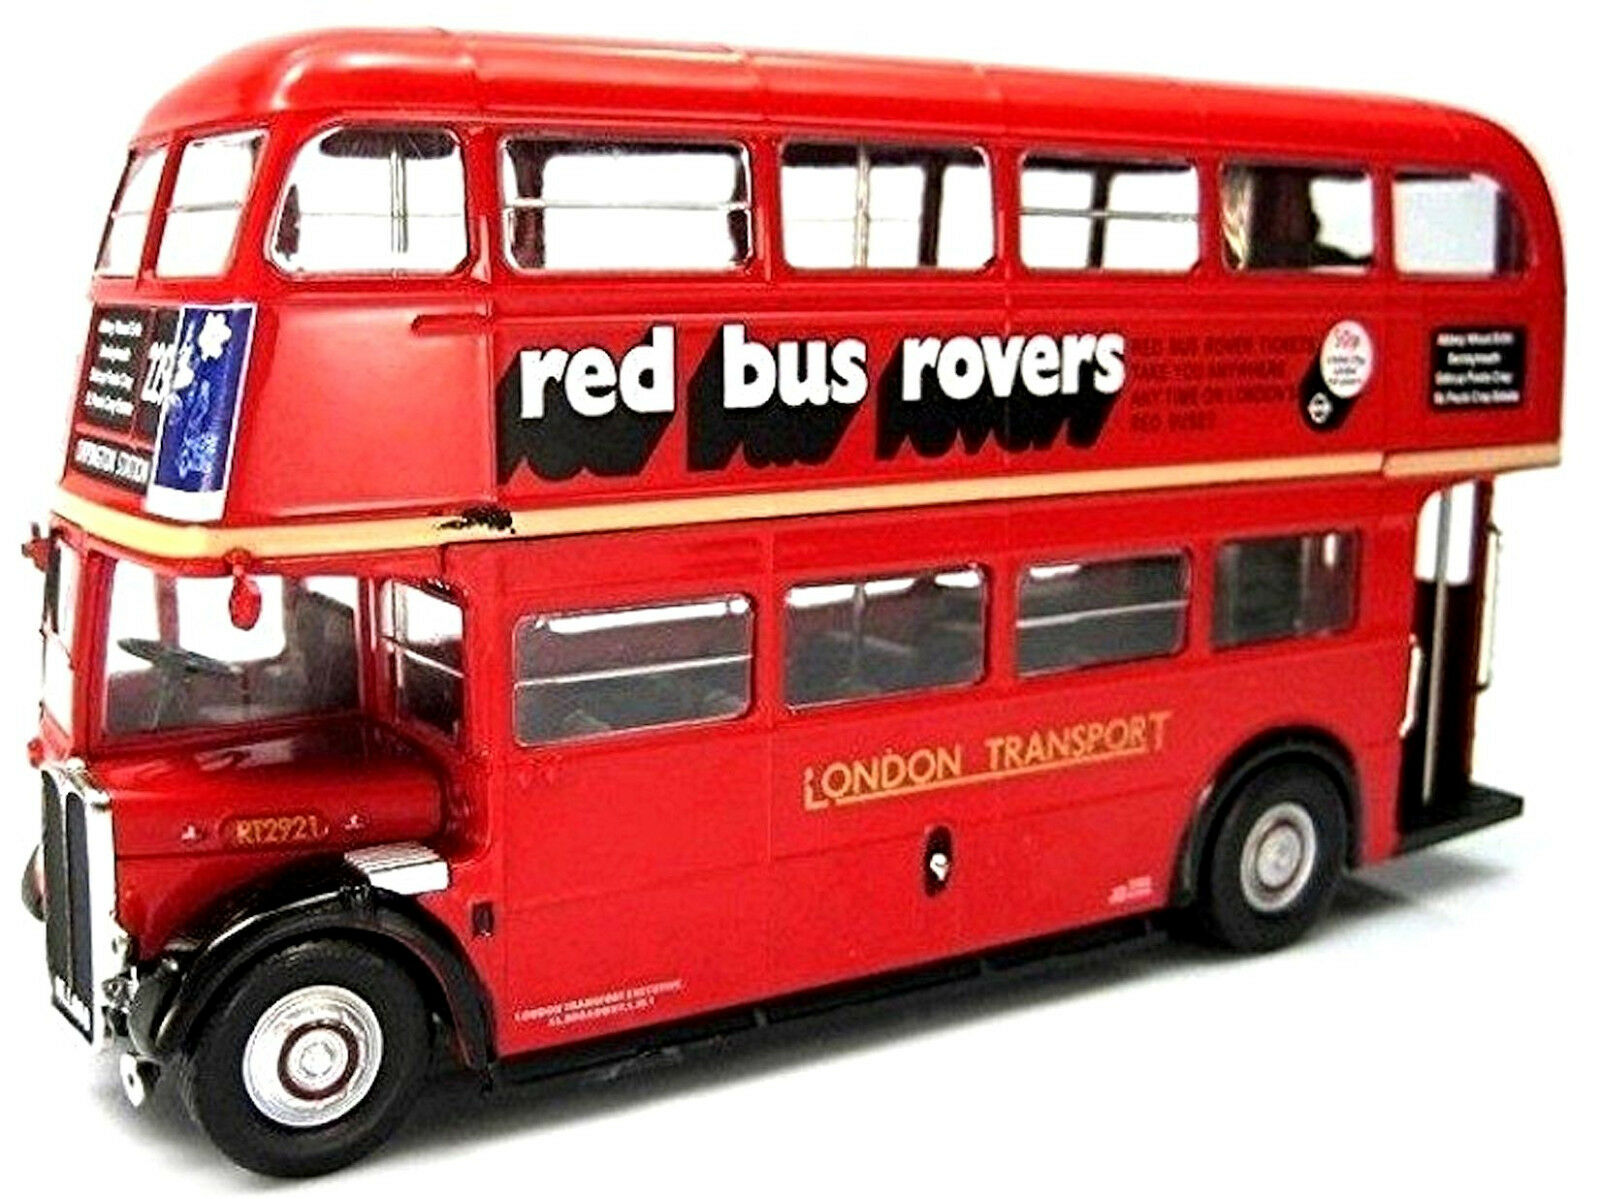 Äc Regent III Rt Royaume-Uni Londres Bus 1947-79 Rouge rouge 1 43 Ixo-Atlas